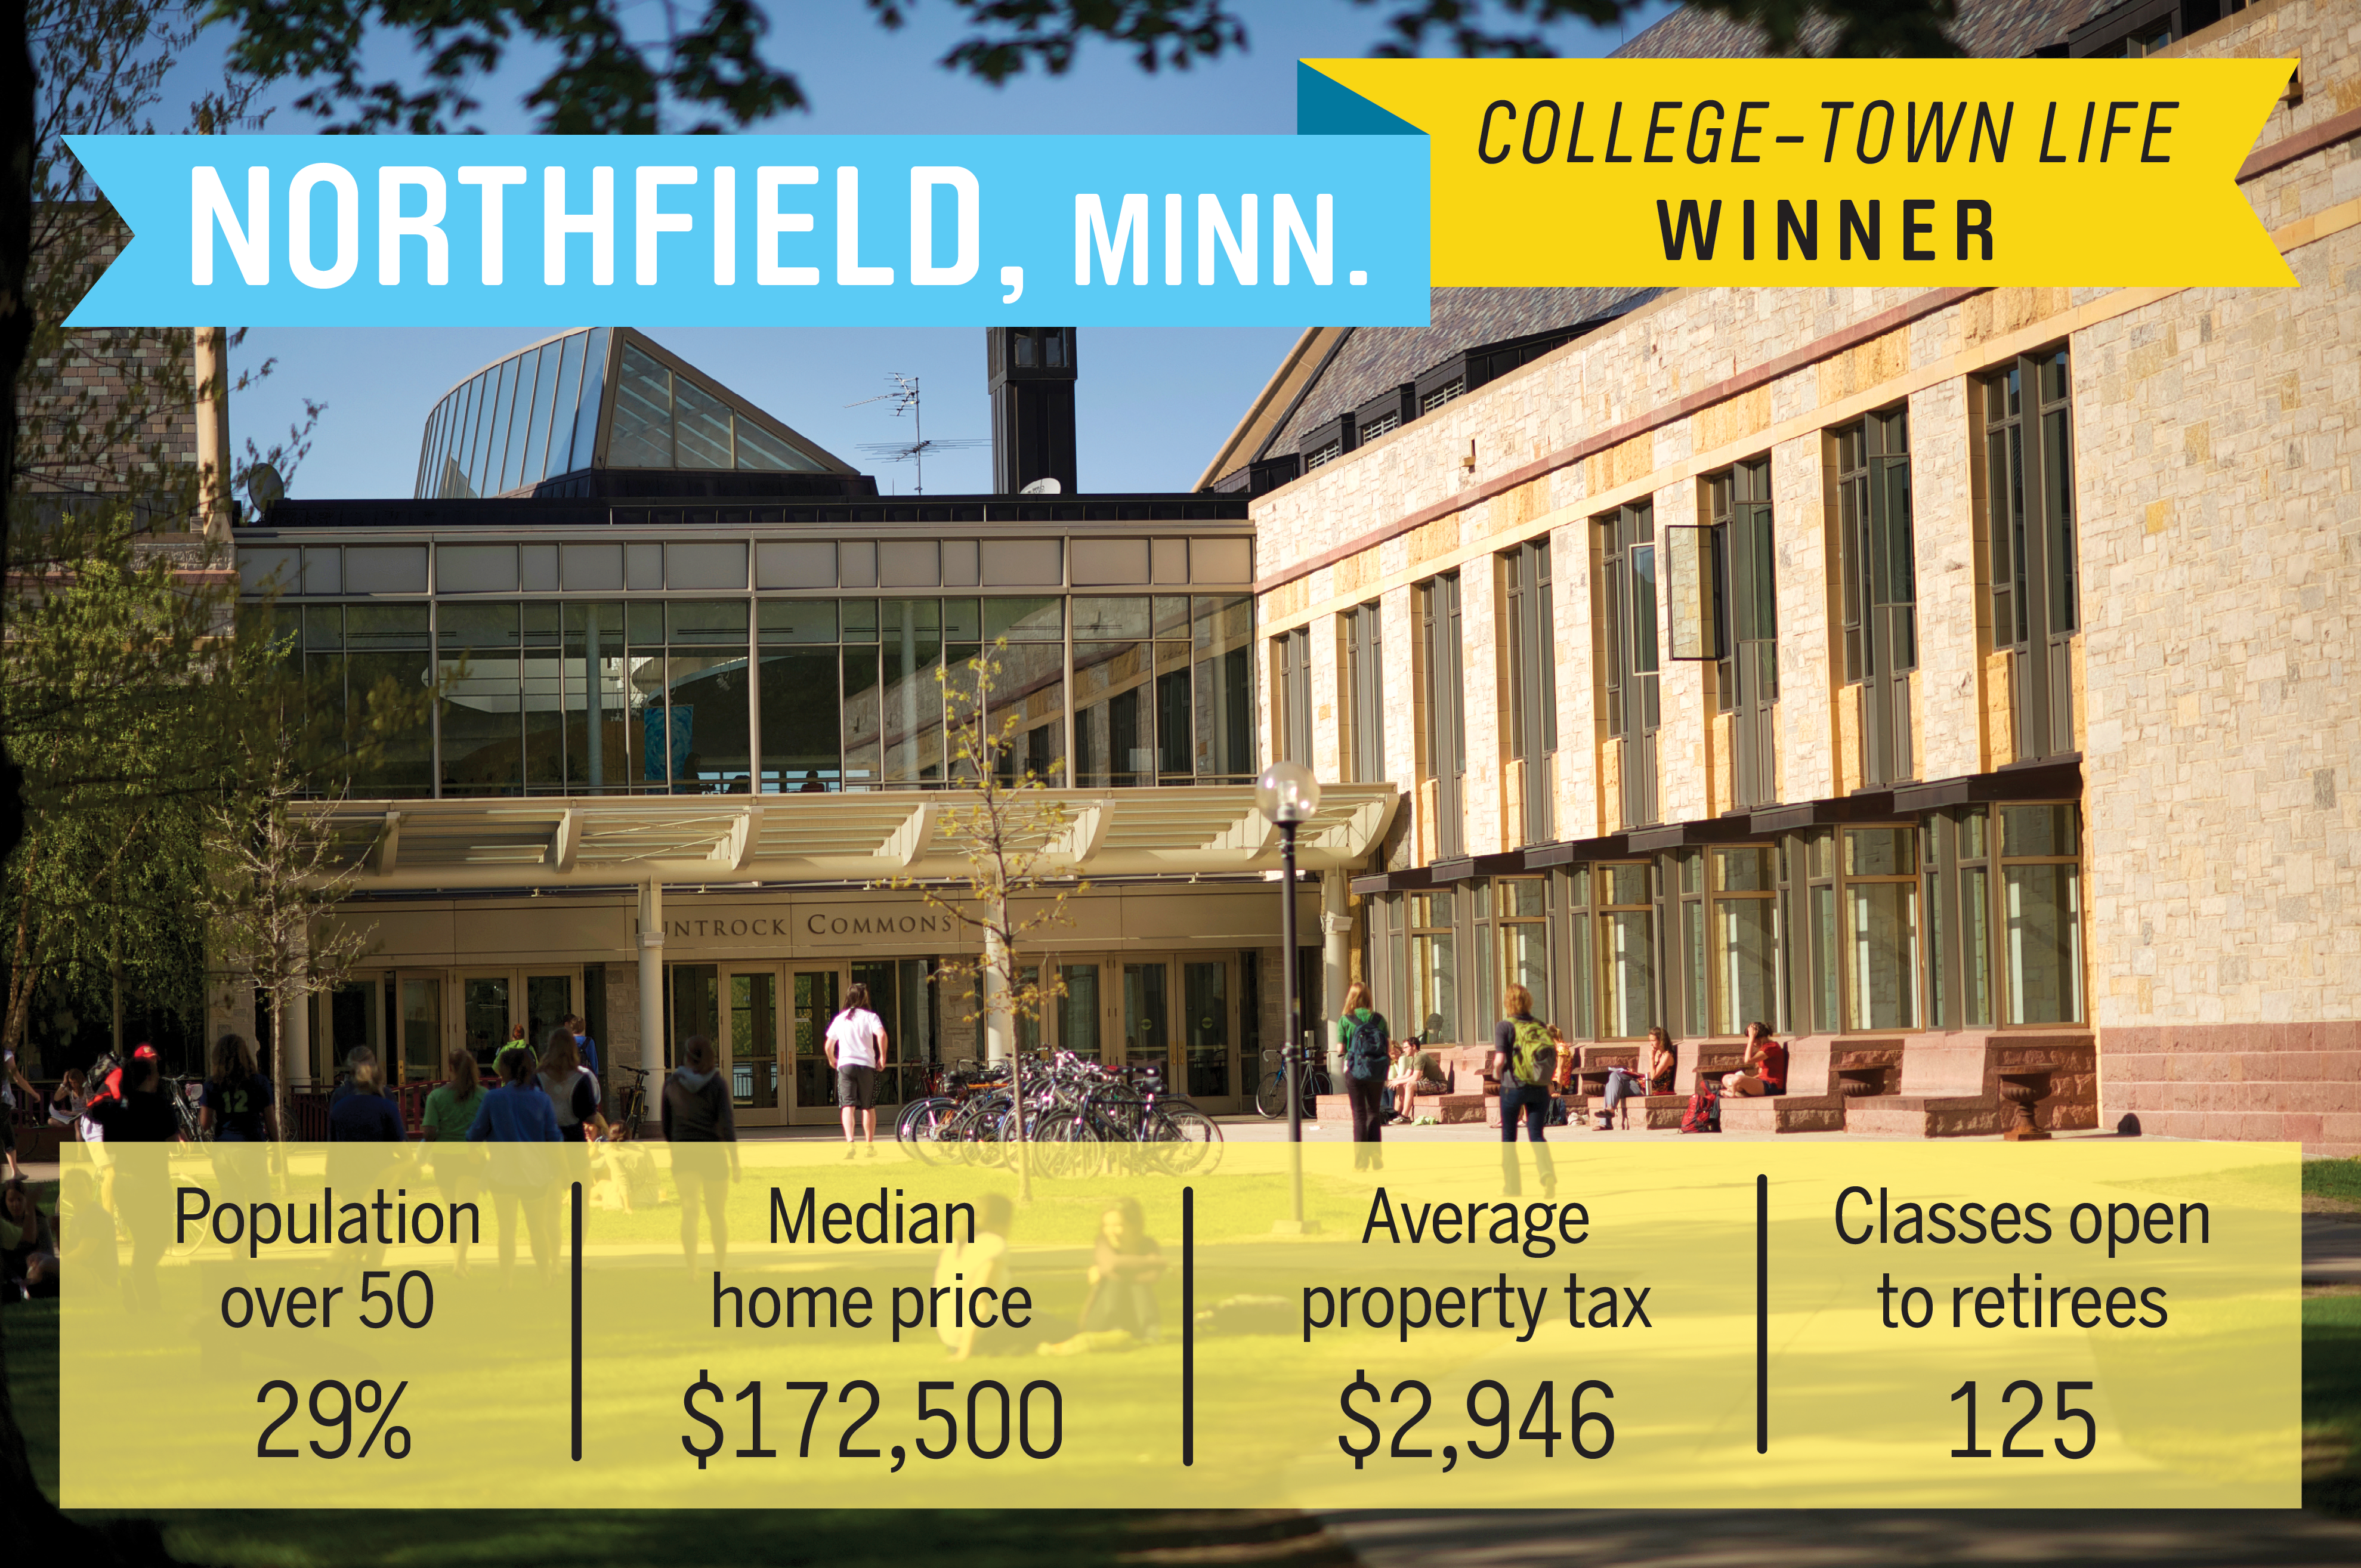 This town 40 miles south of Minneapolis has two liberal arts colleges--Carleton and St. Olaf--which give the town a youthful vibe and a rich variety of higher-ed classes tailored to retirees. The low cost of living (median home price: $172,500) helps offset state taxes on Social Security and pension benefits.